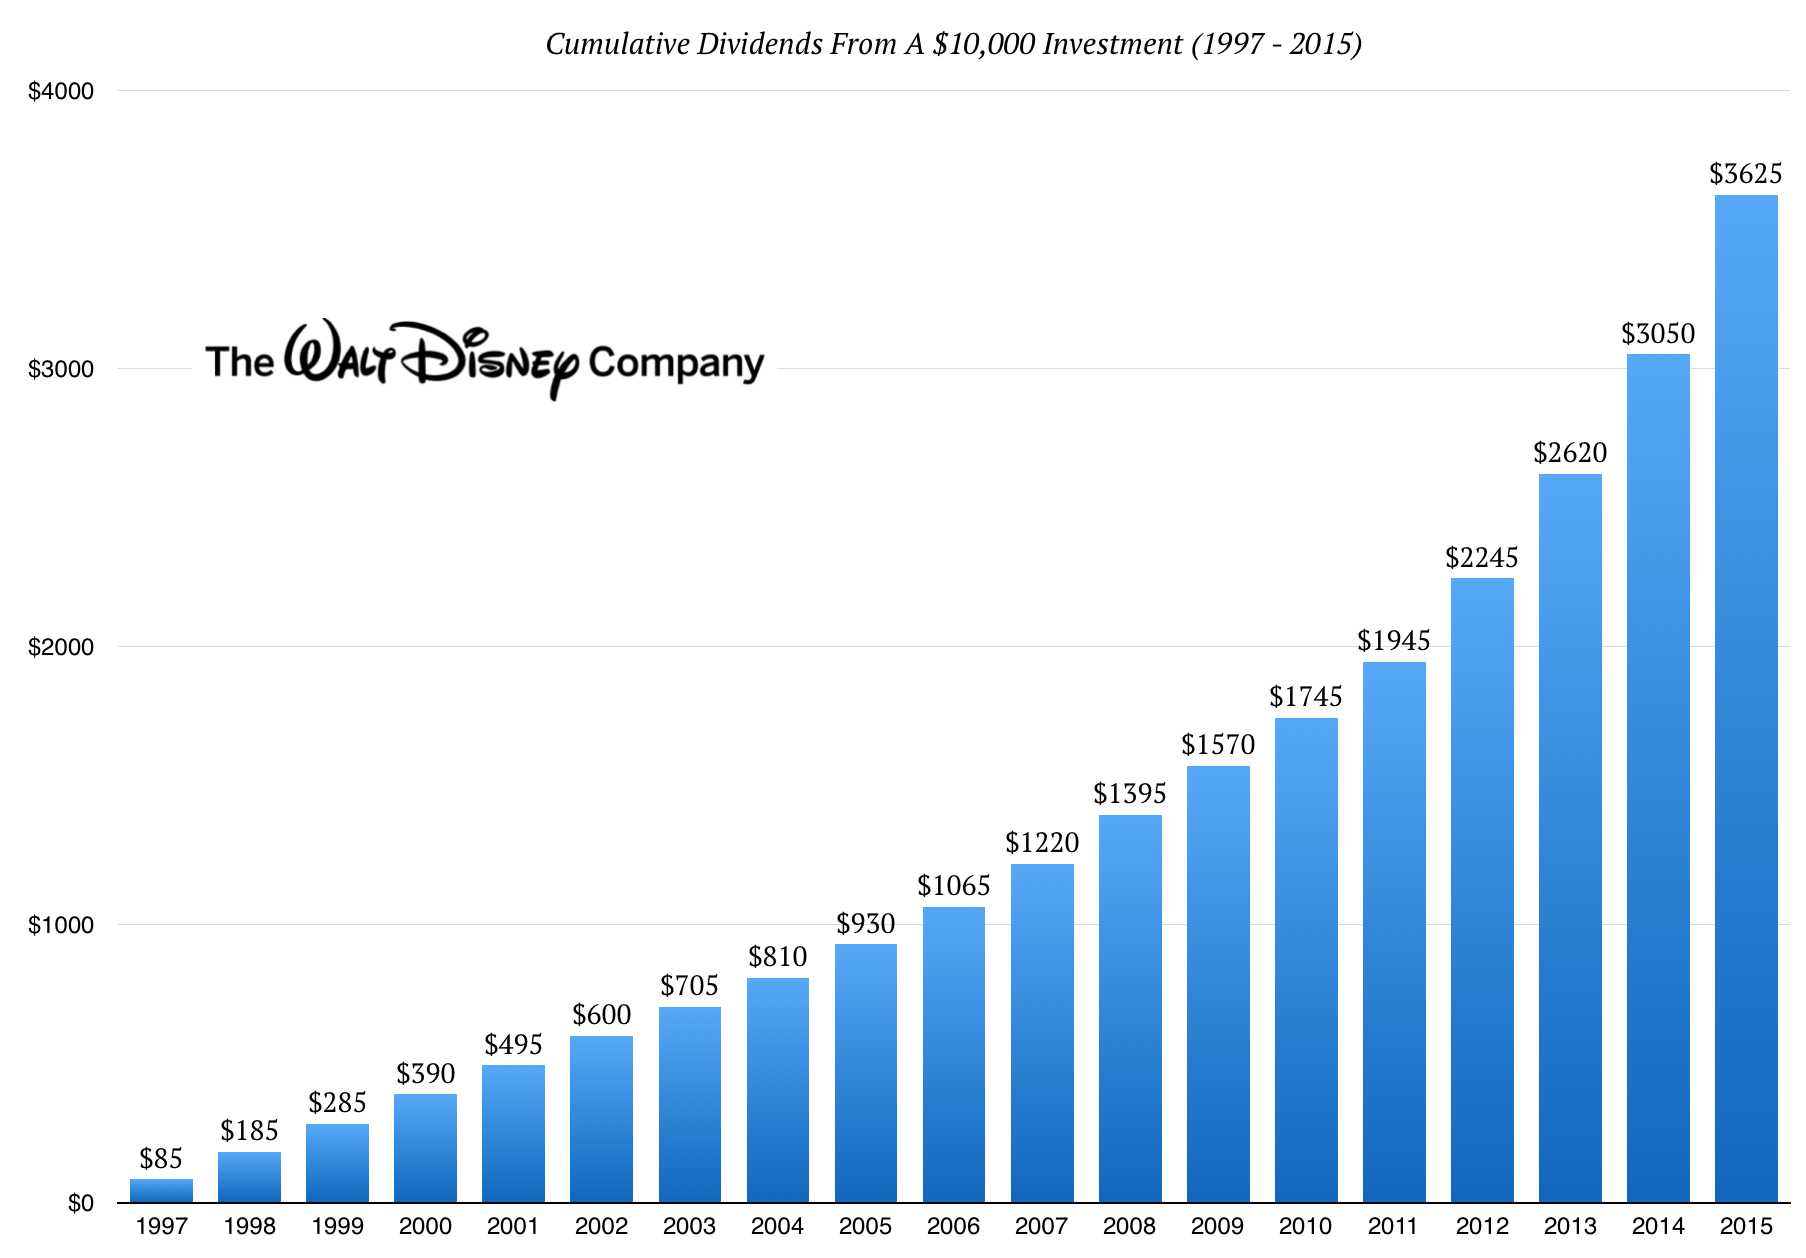 Disney20YearDividends